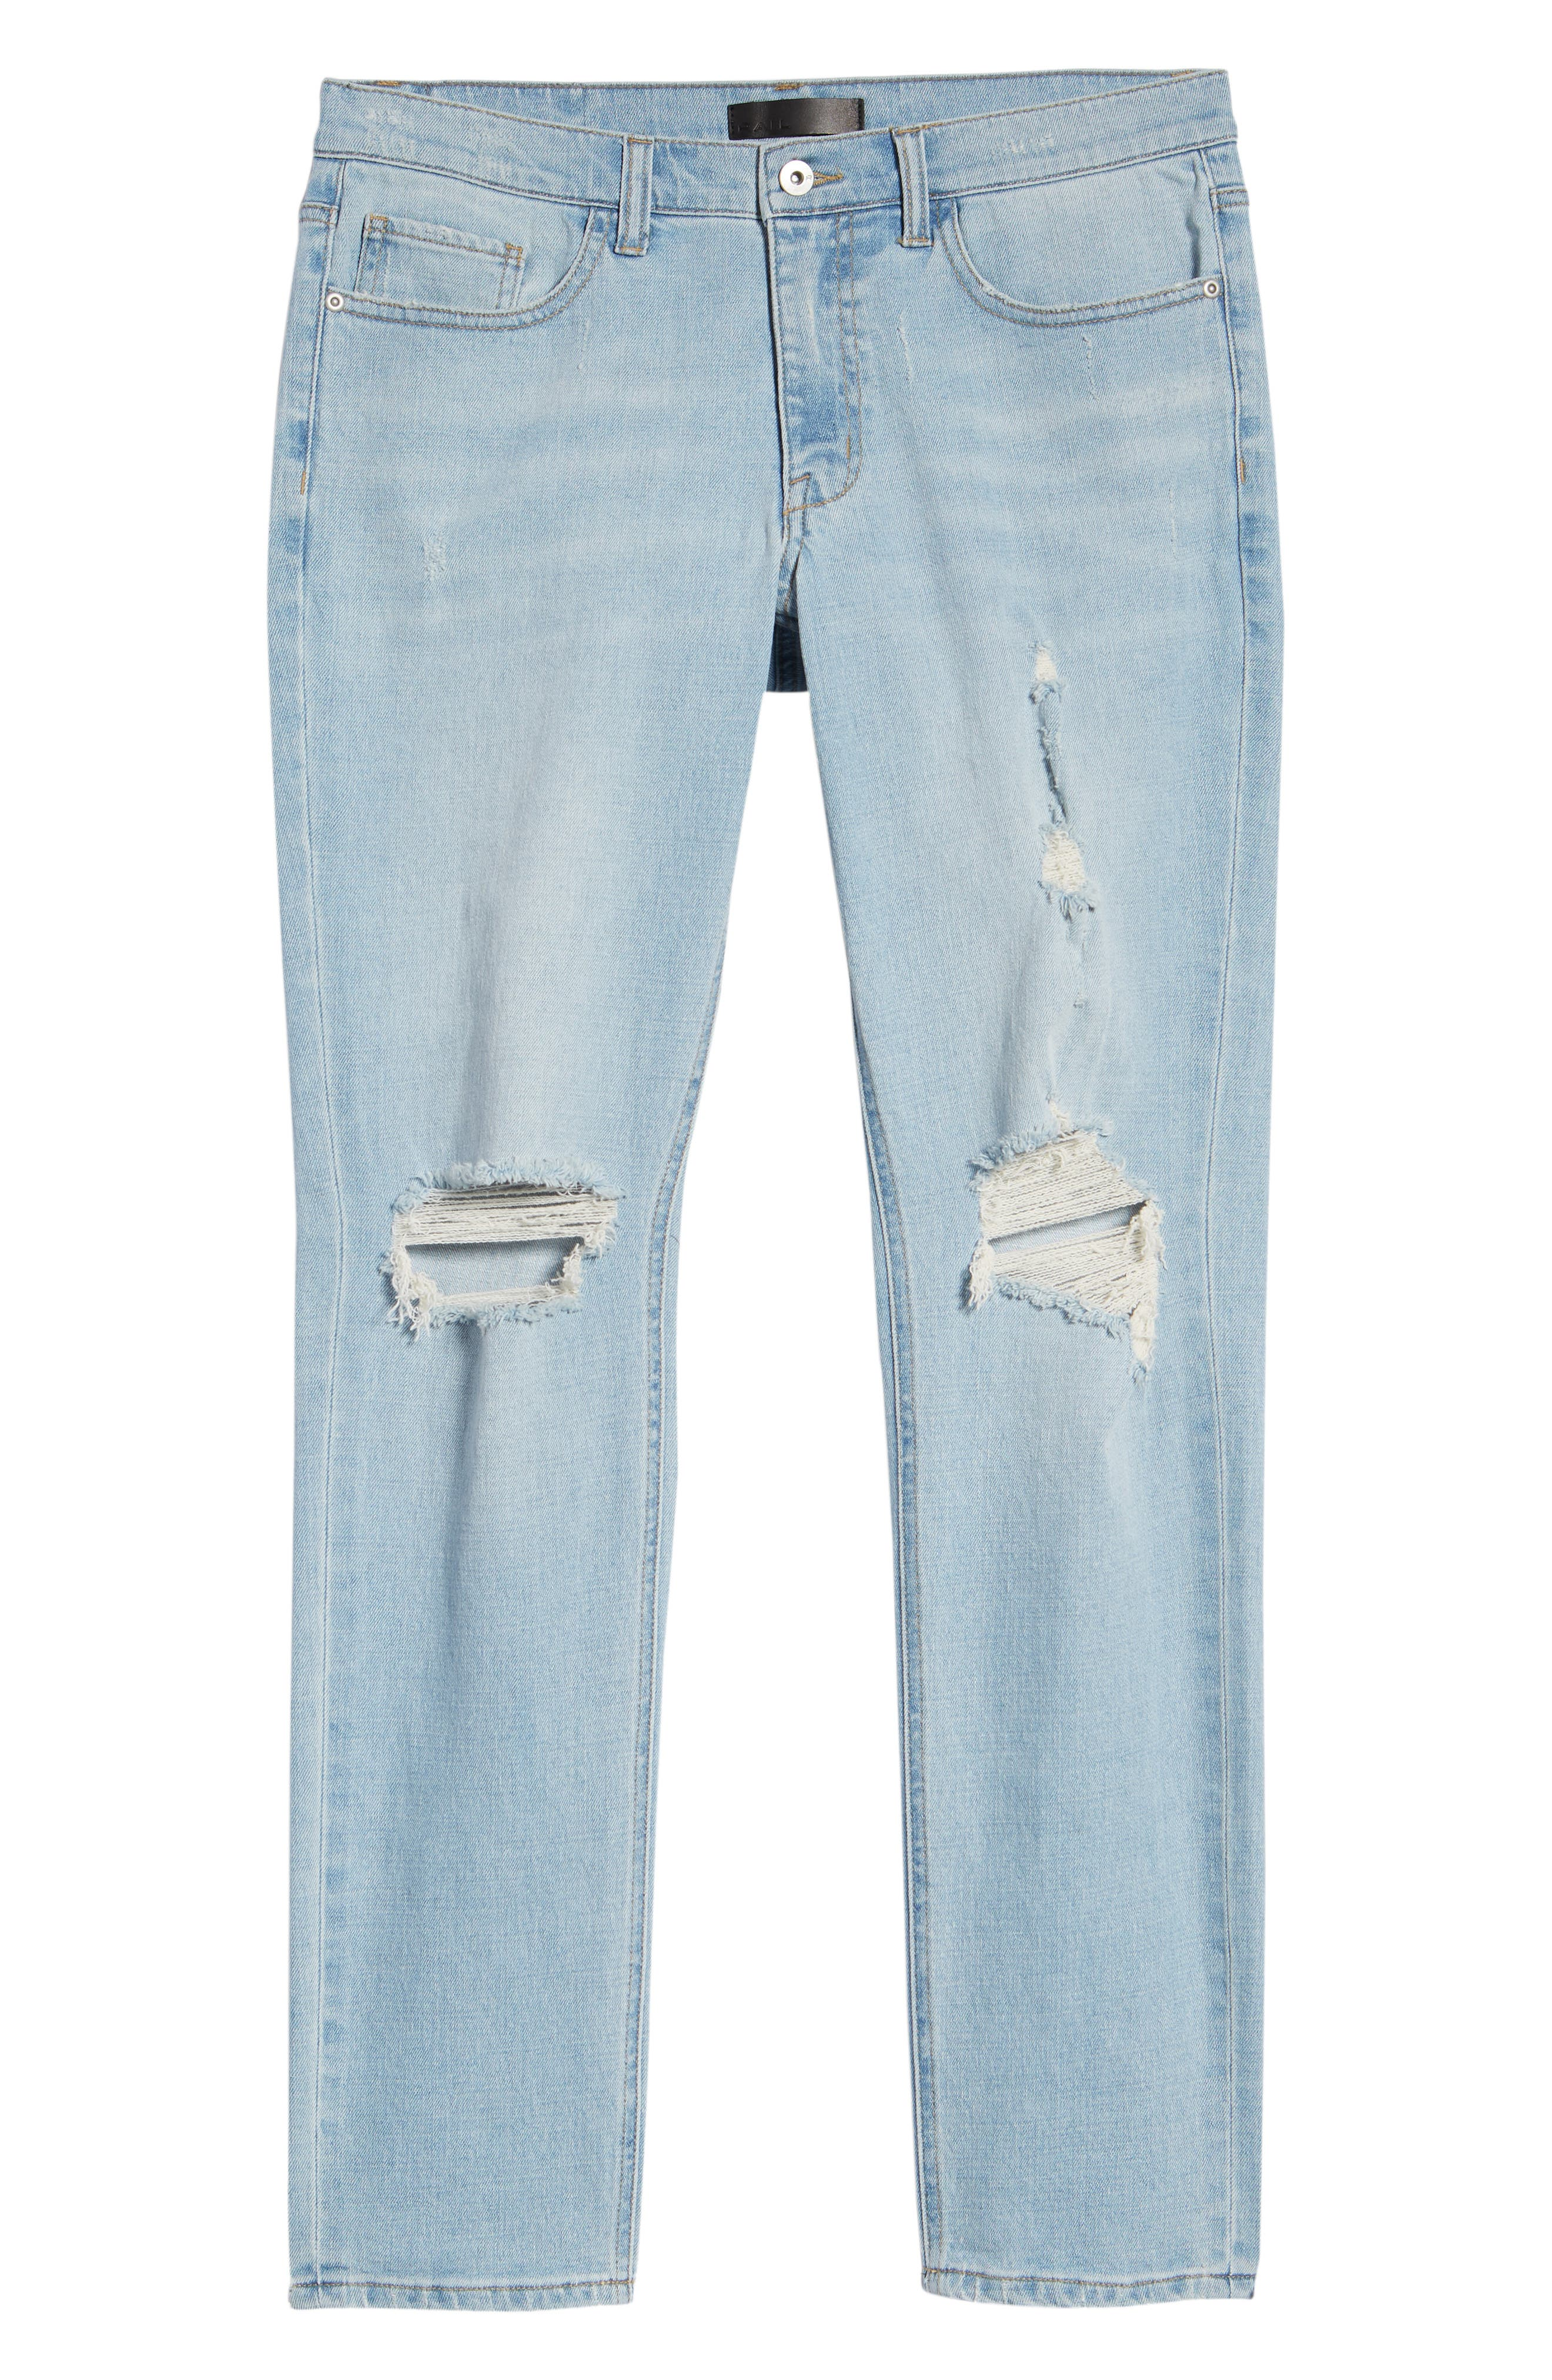 THE RAIL, Ripped Skinny Jeans, Alternate thumbnail 7, color, BLUE CORGAN WASH